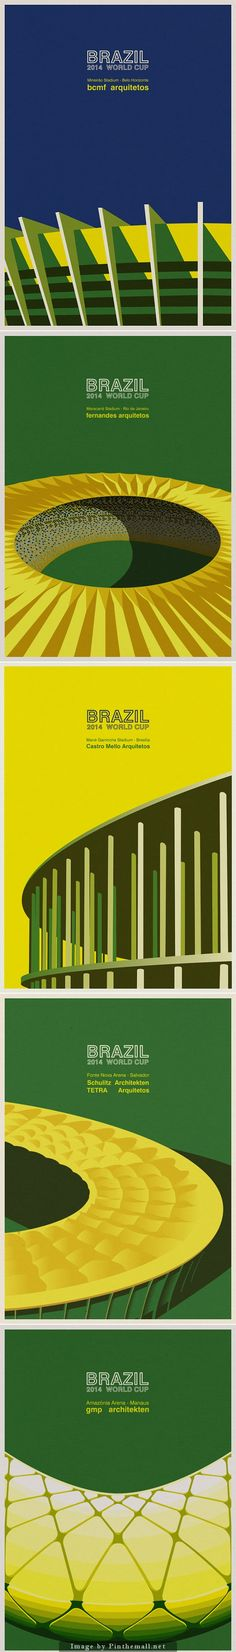 Brazil 2014 World Cup Stadiums by André Chiote+